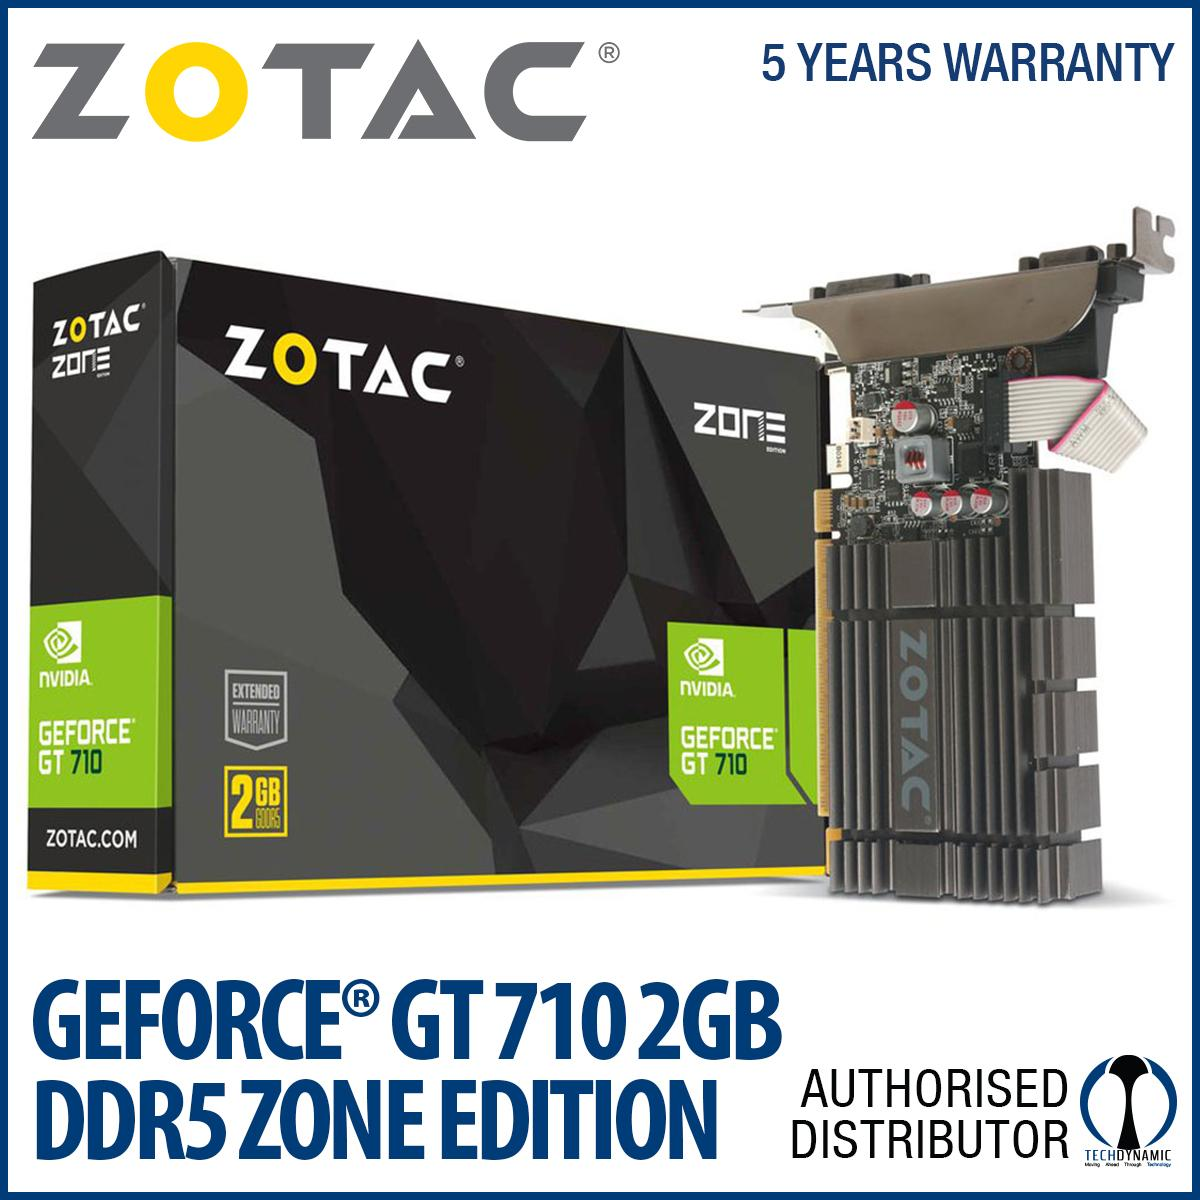 Who Sells Zotac Geforce® Gt 710 2Gb Ddr5 Zone Edition Cheap